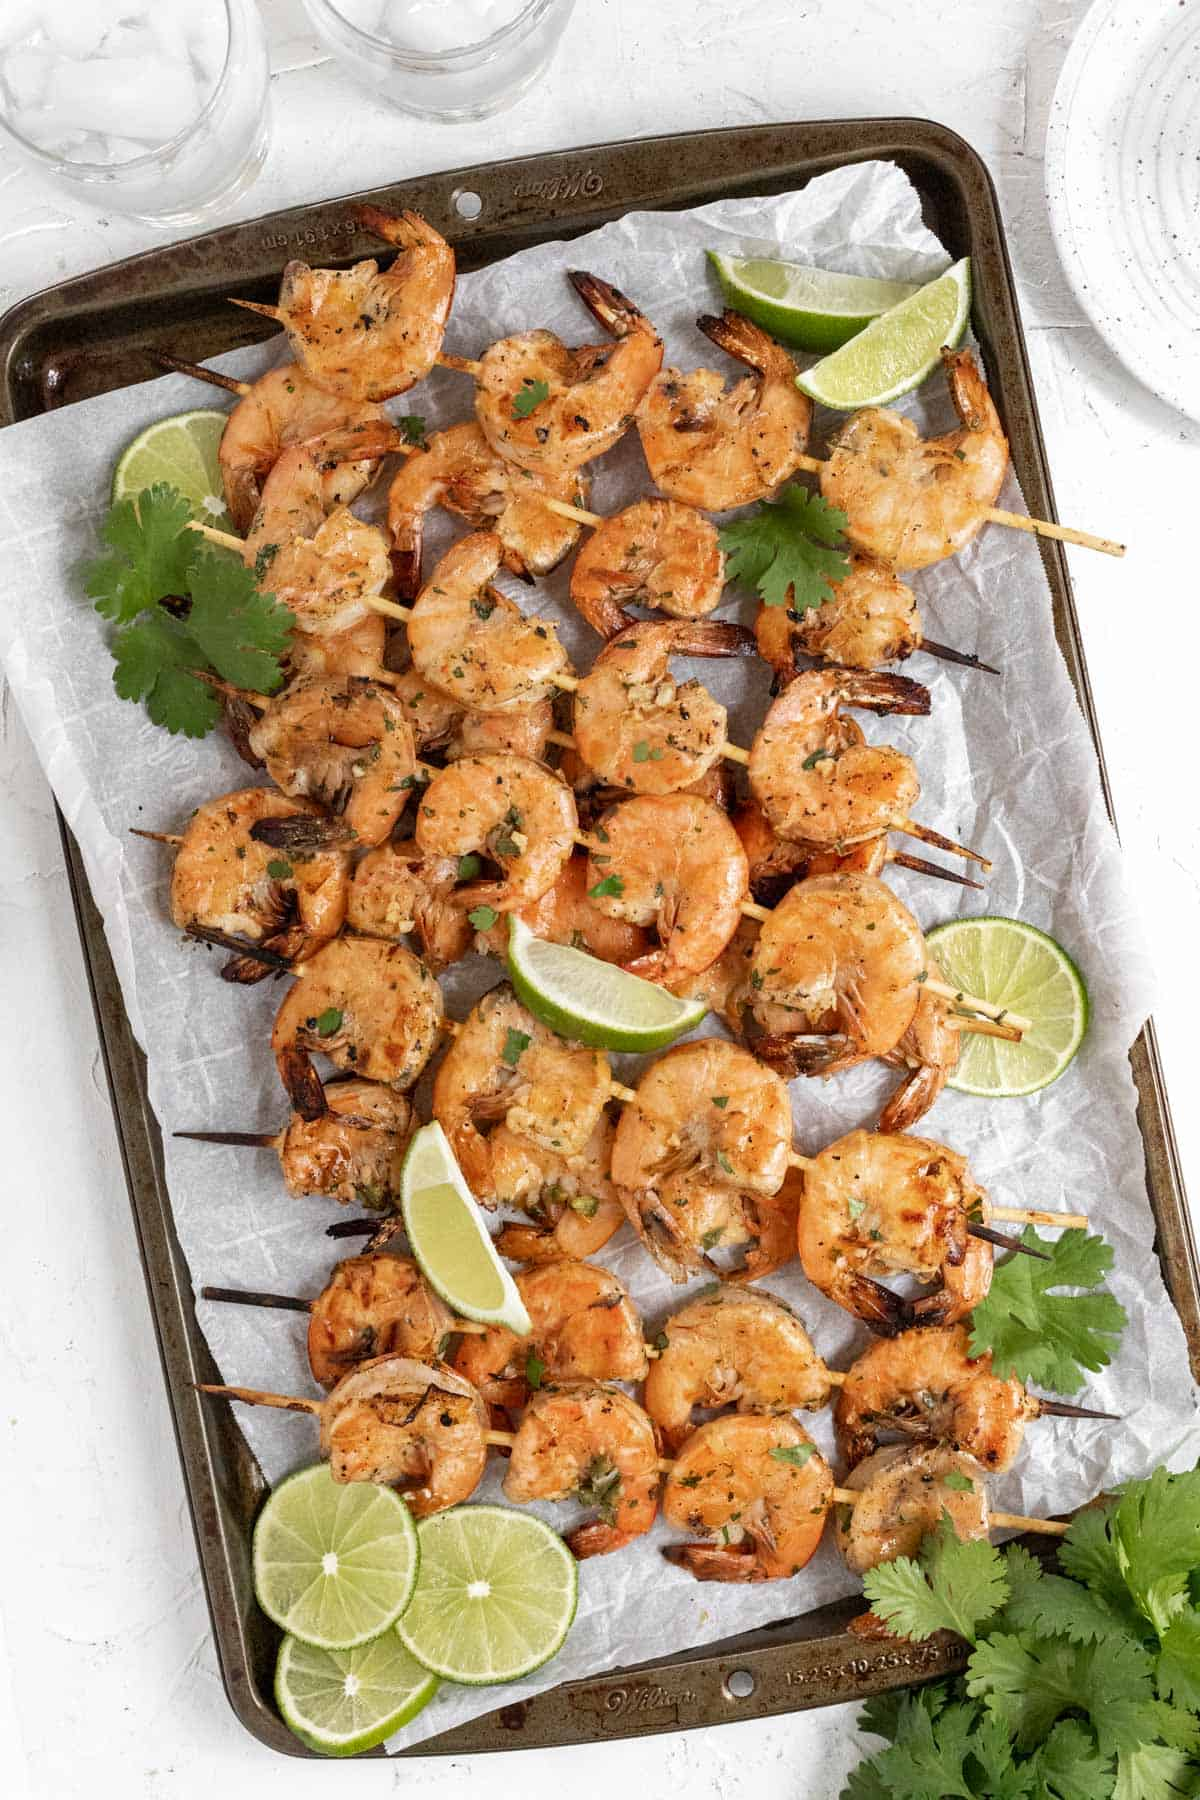 Grilled margarita shrimp skewers on a sheet pan with limes and cilantro.